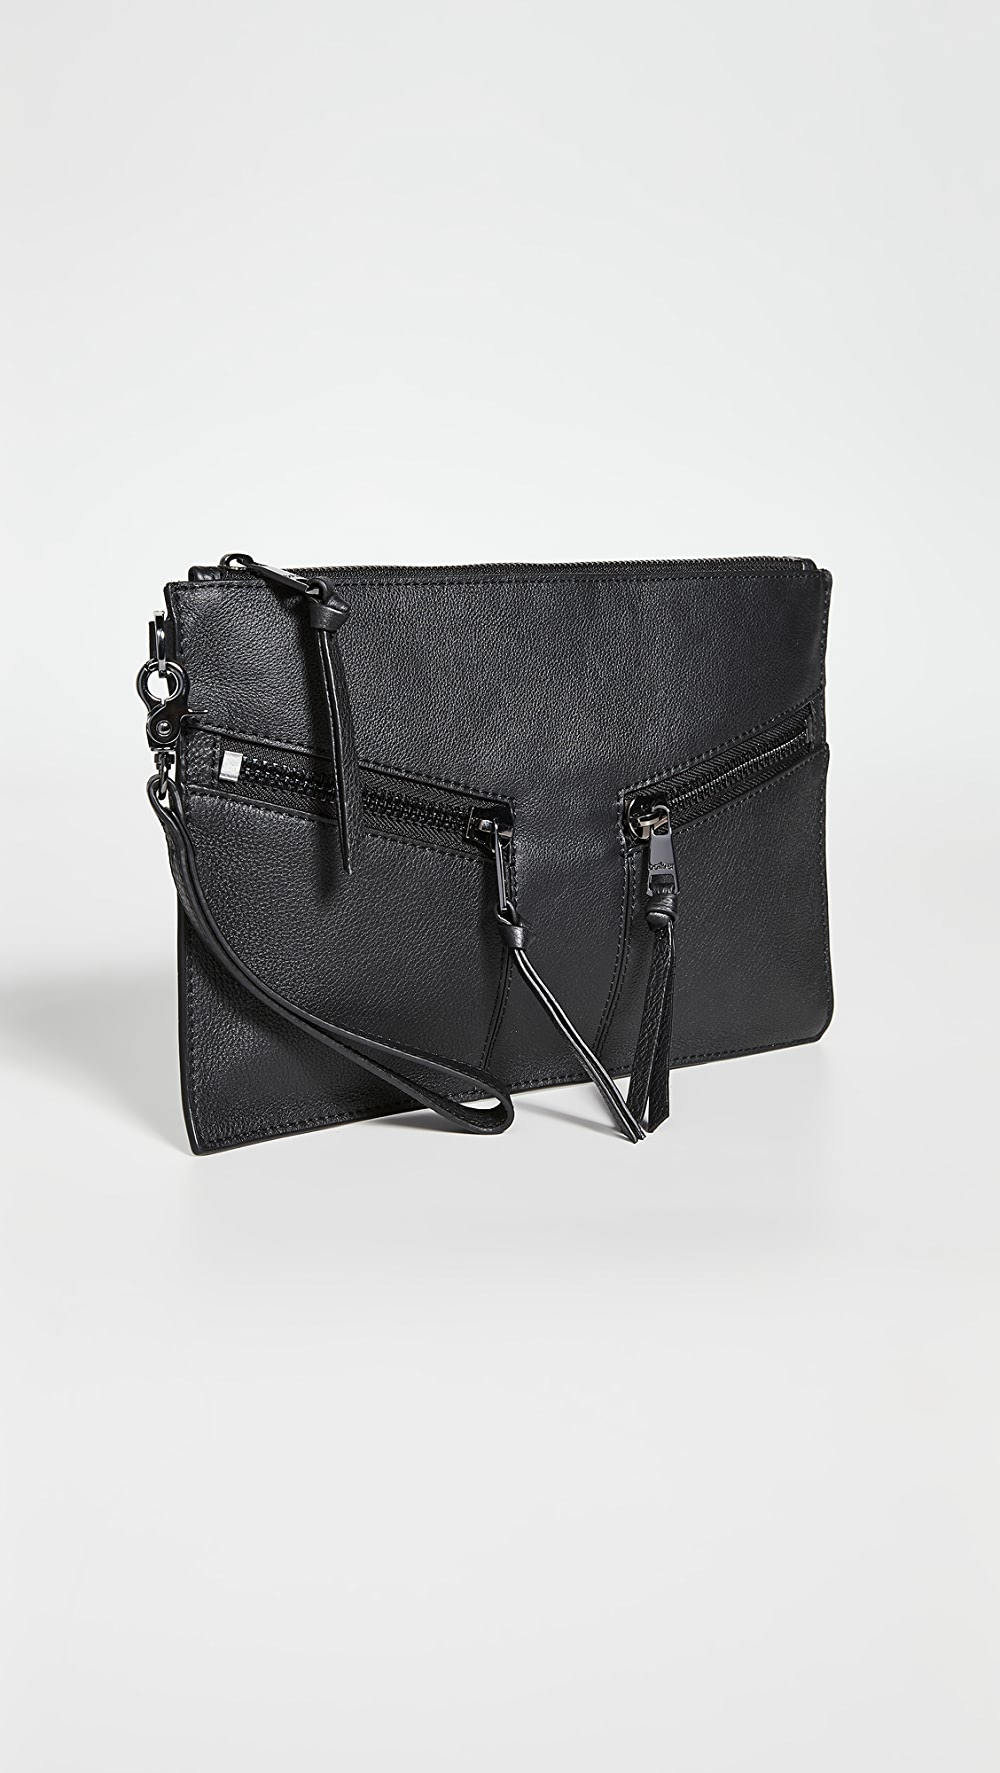 Considerate Botkier - Trigger Clutch To Have Both The Quality Of Tenacity And Hardness